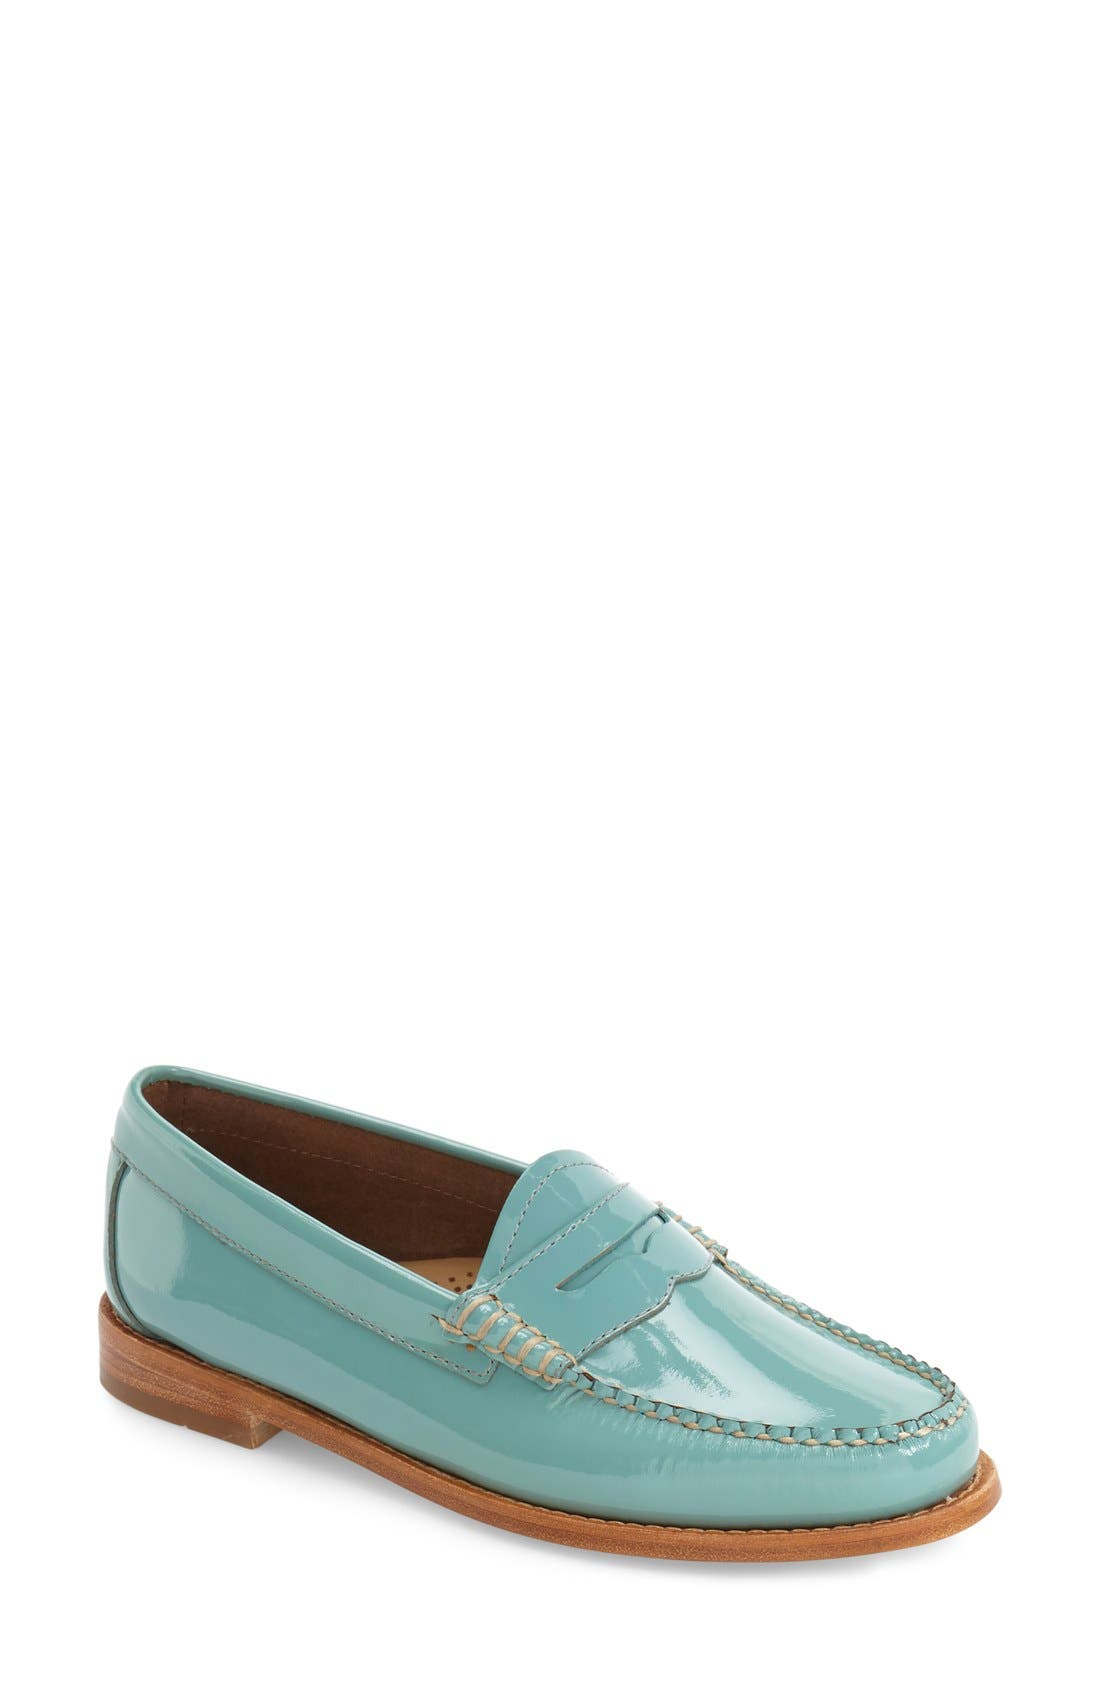 'Whitney' Loafer,                             Main thumbnail 36, color,